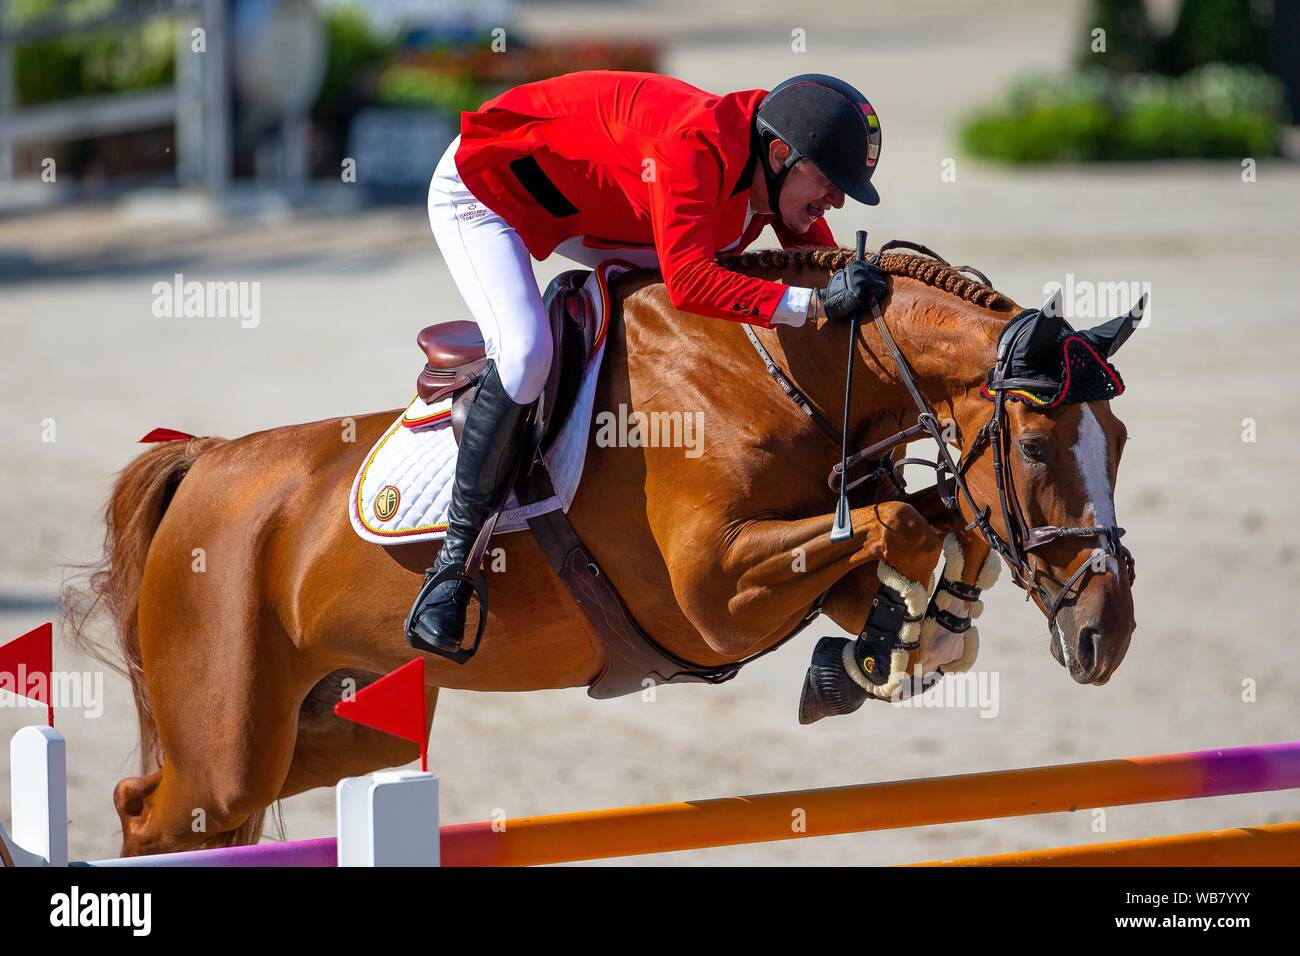 Rotterdam. Netherlands. 23 August 2019. Team Gold Medal. Jos Verlooy (BEL)  riding Igor in the Team Final. Showjumping. Longines FEI European  Championships. Credit Elli Birch/SIP photo agency/Alamy live news Stock  Photo -